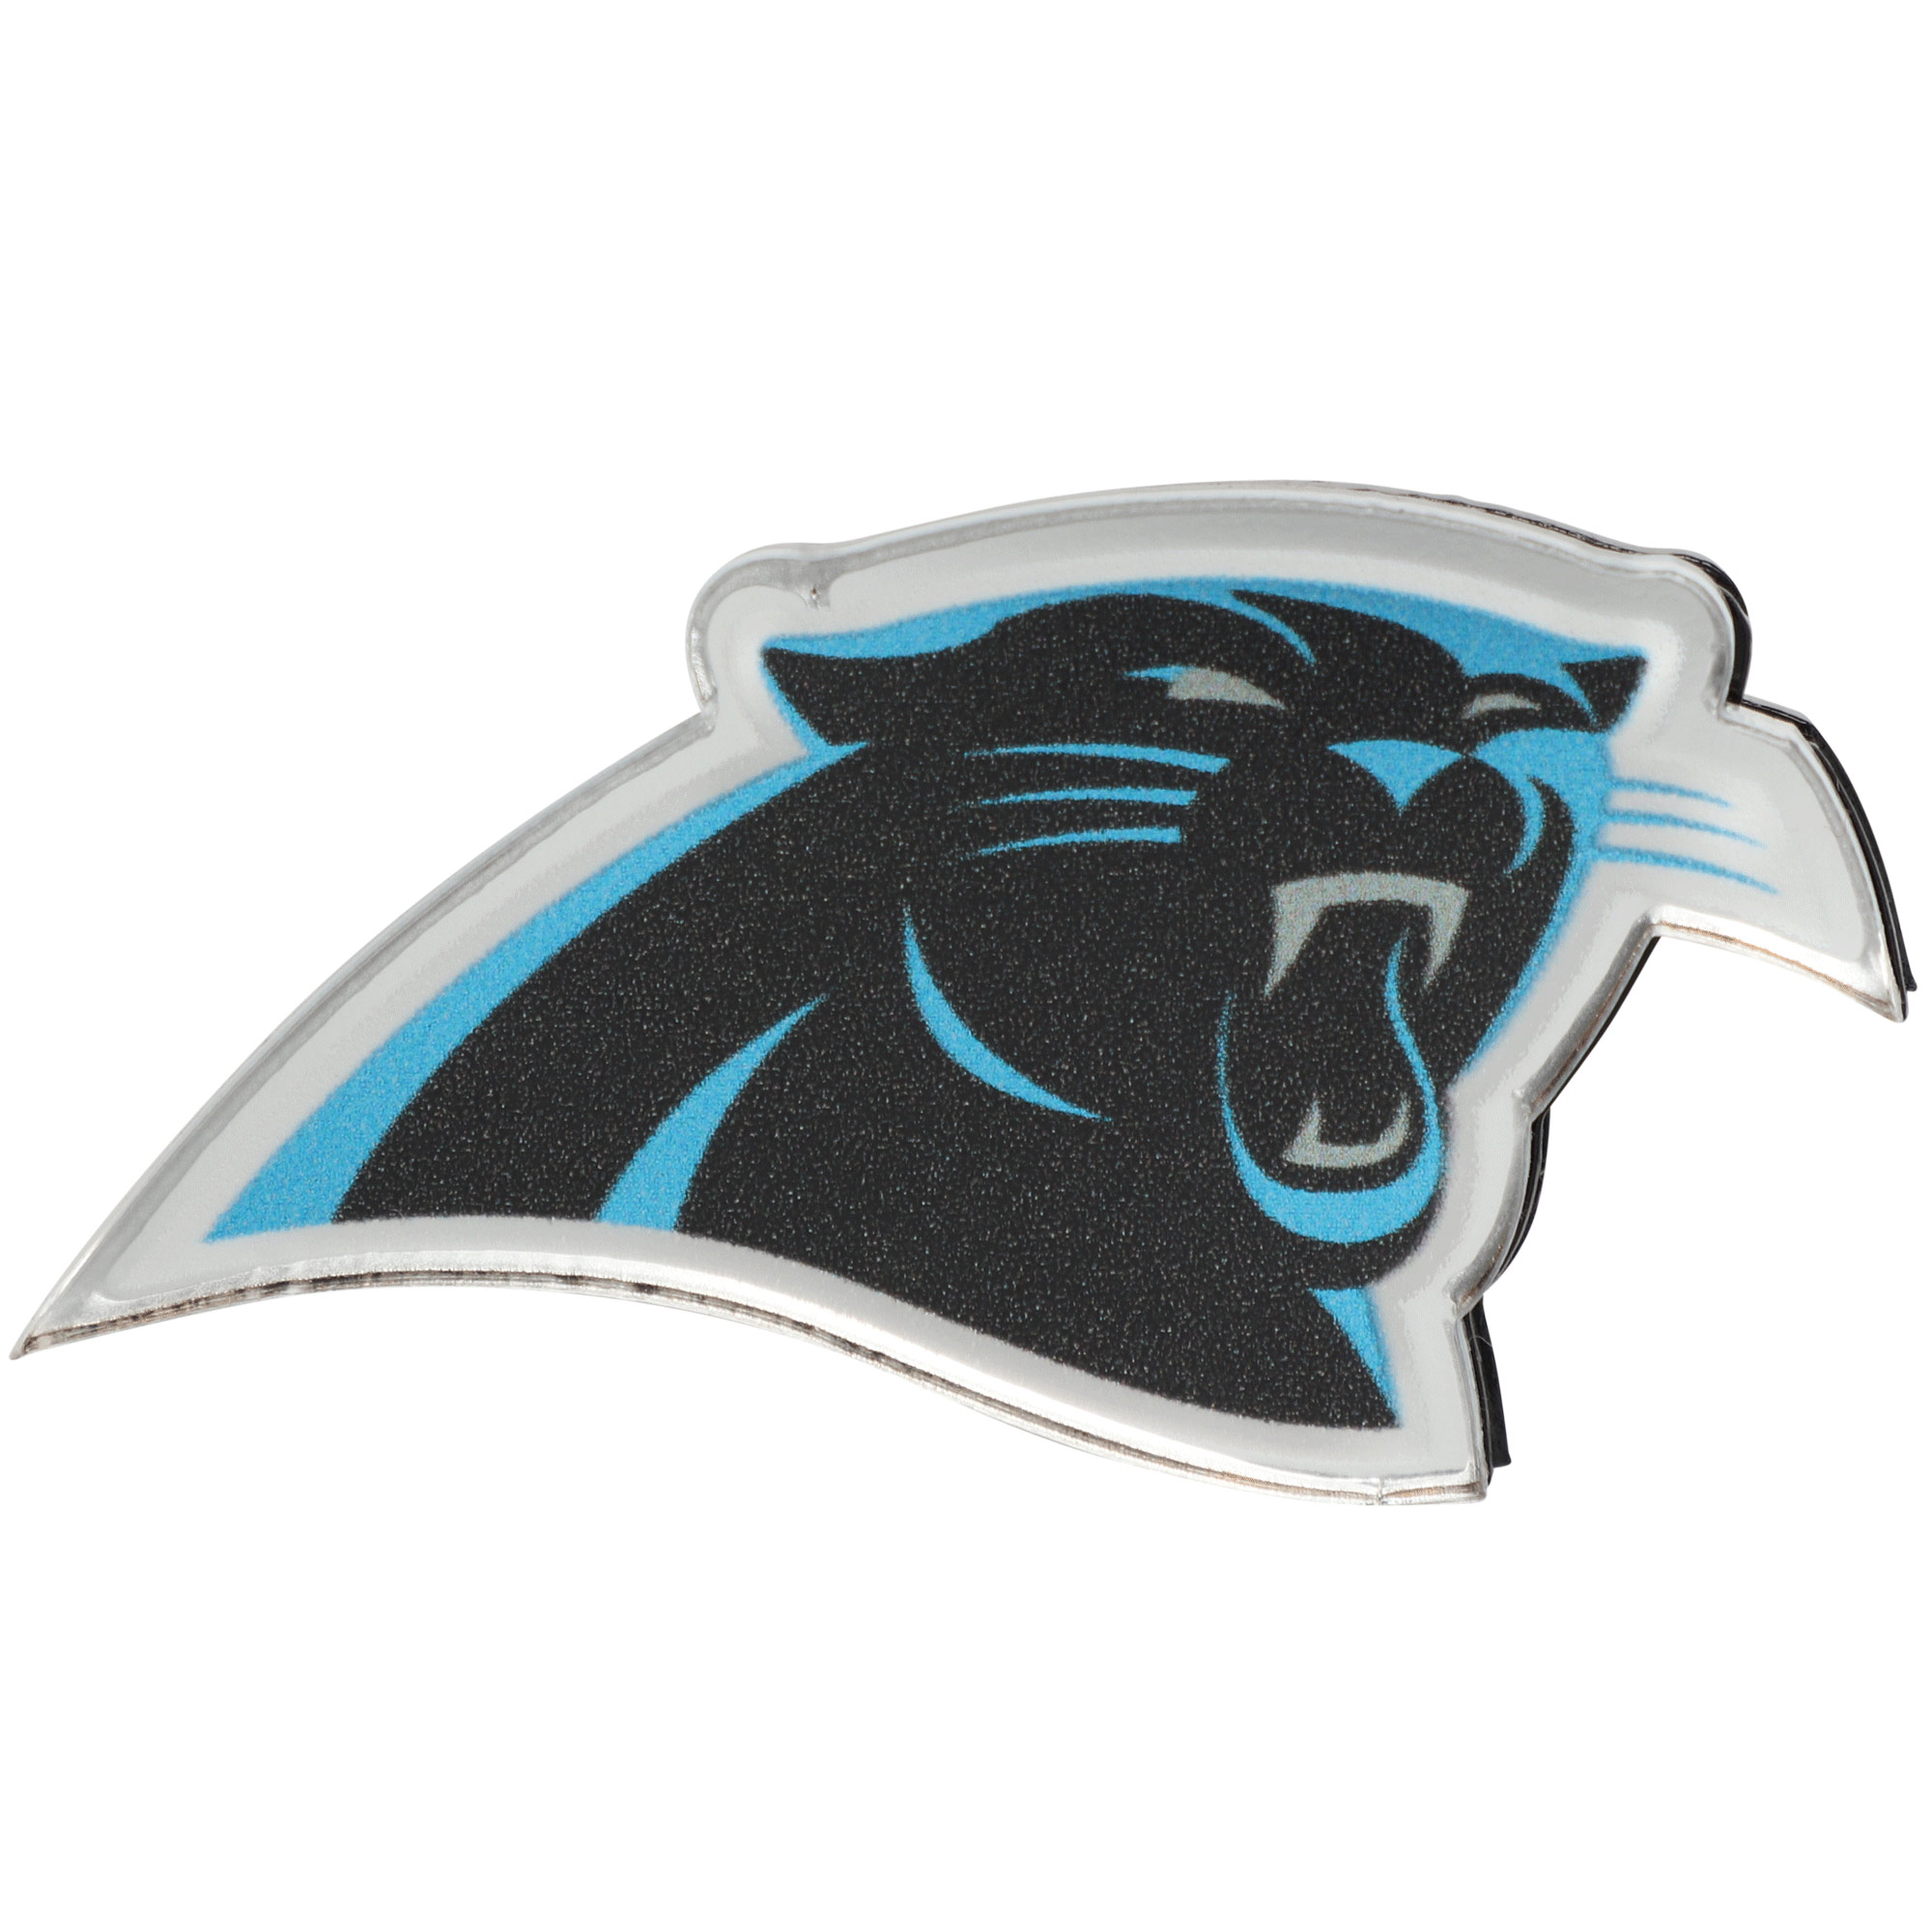 Carolina Panthers Acrylic License Plate Screw Cover - No Size